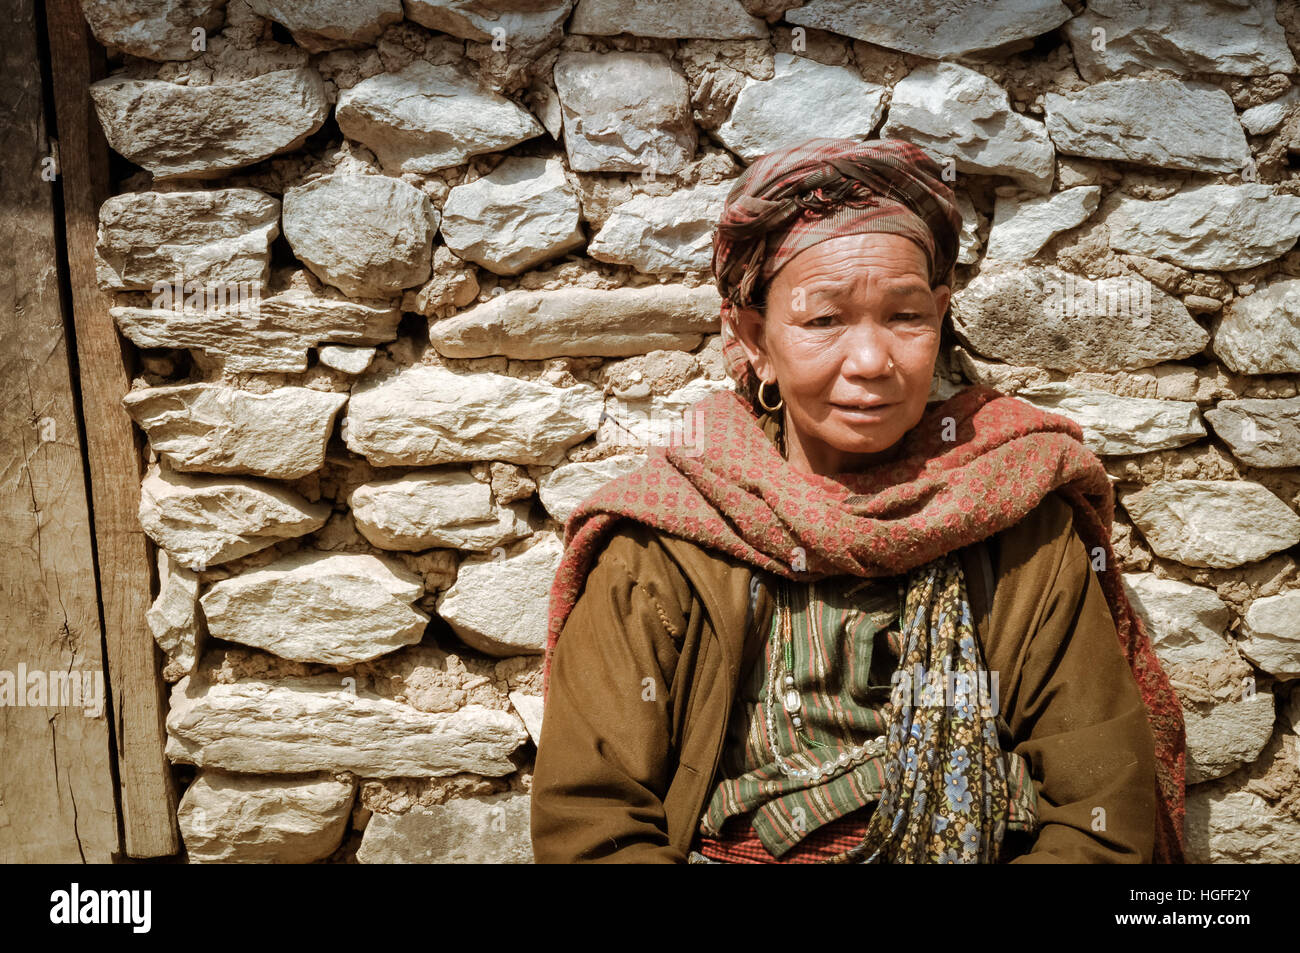 Dolpo, Nepal - circa May 2012: Native woman with red headcloth and scarf wears brown jacket and sits in front of - Stock Image